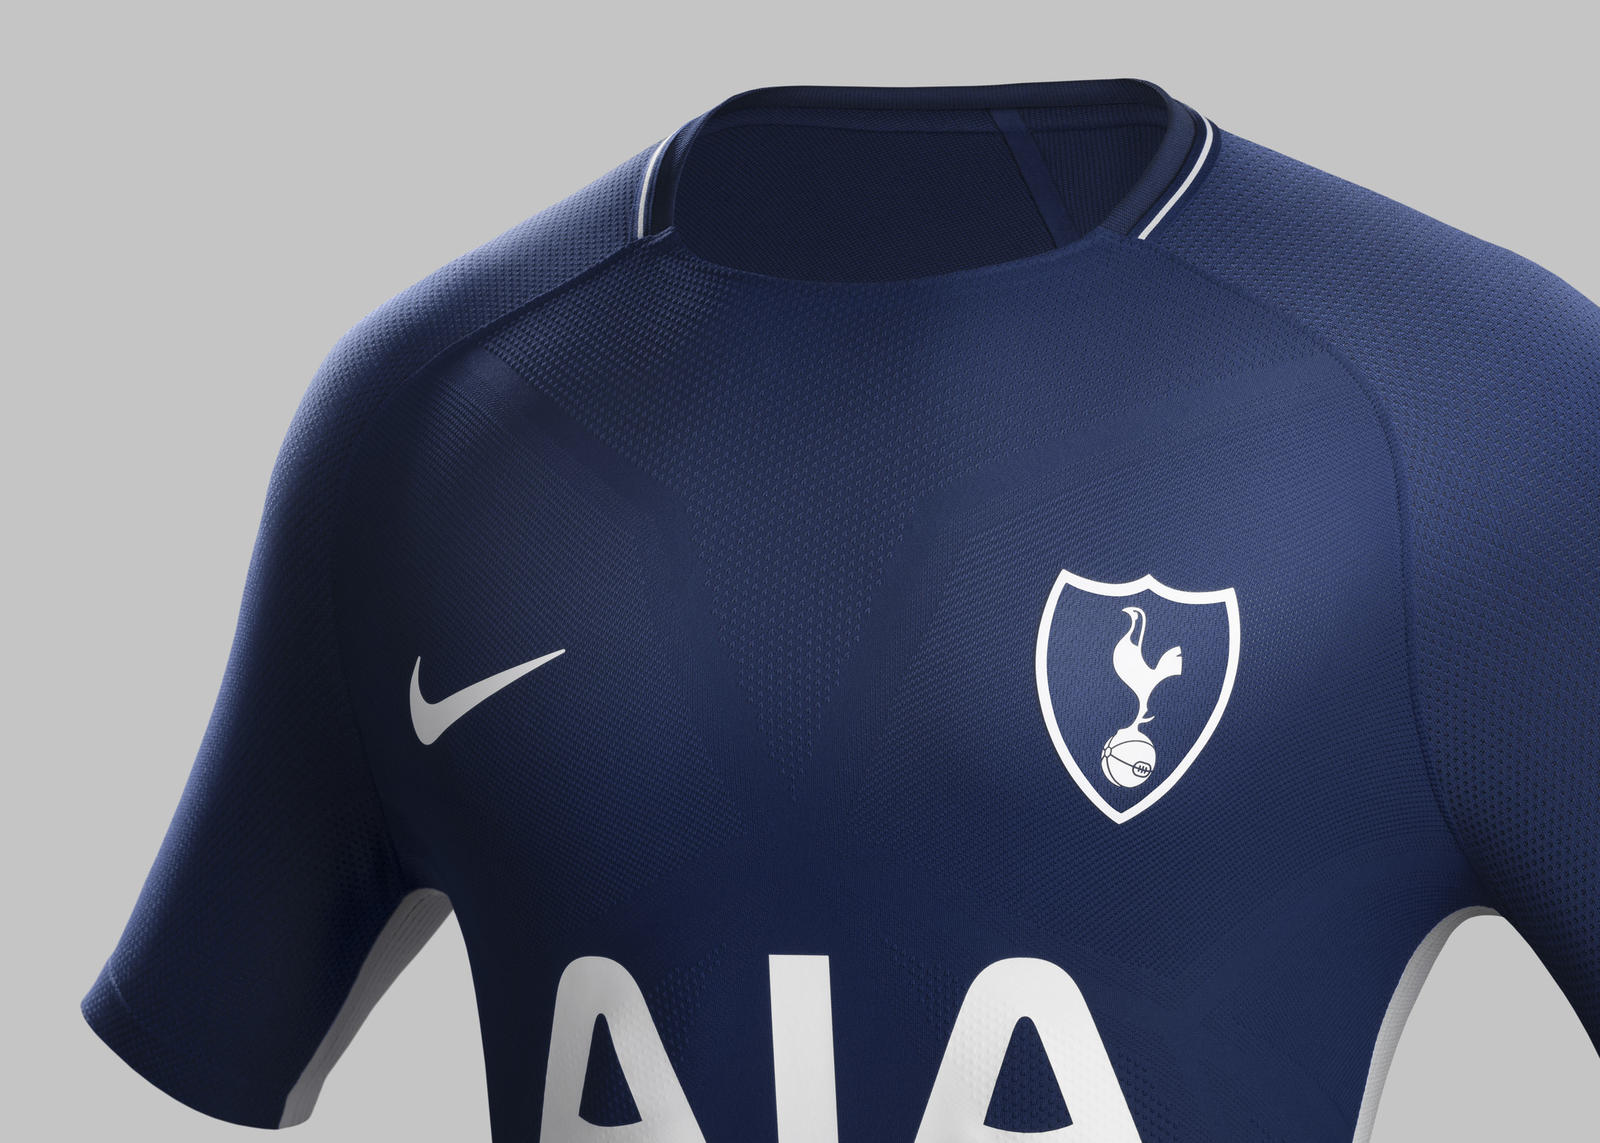 Fy17 18 fb we tottenham club kits a crest match r rectangle 1600